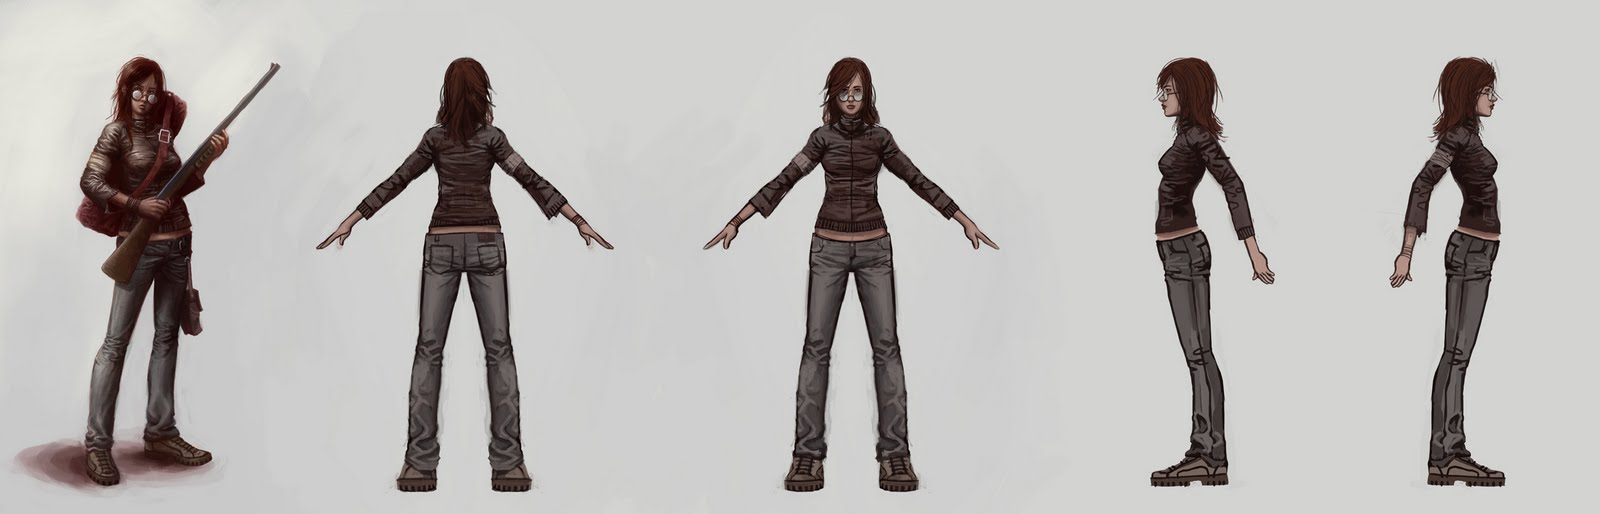 CHARACTER DESIGN_05